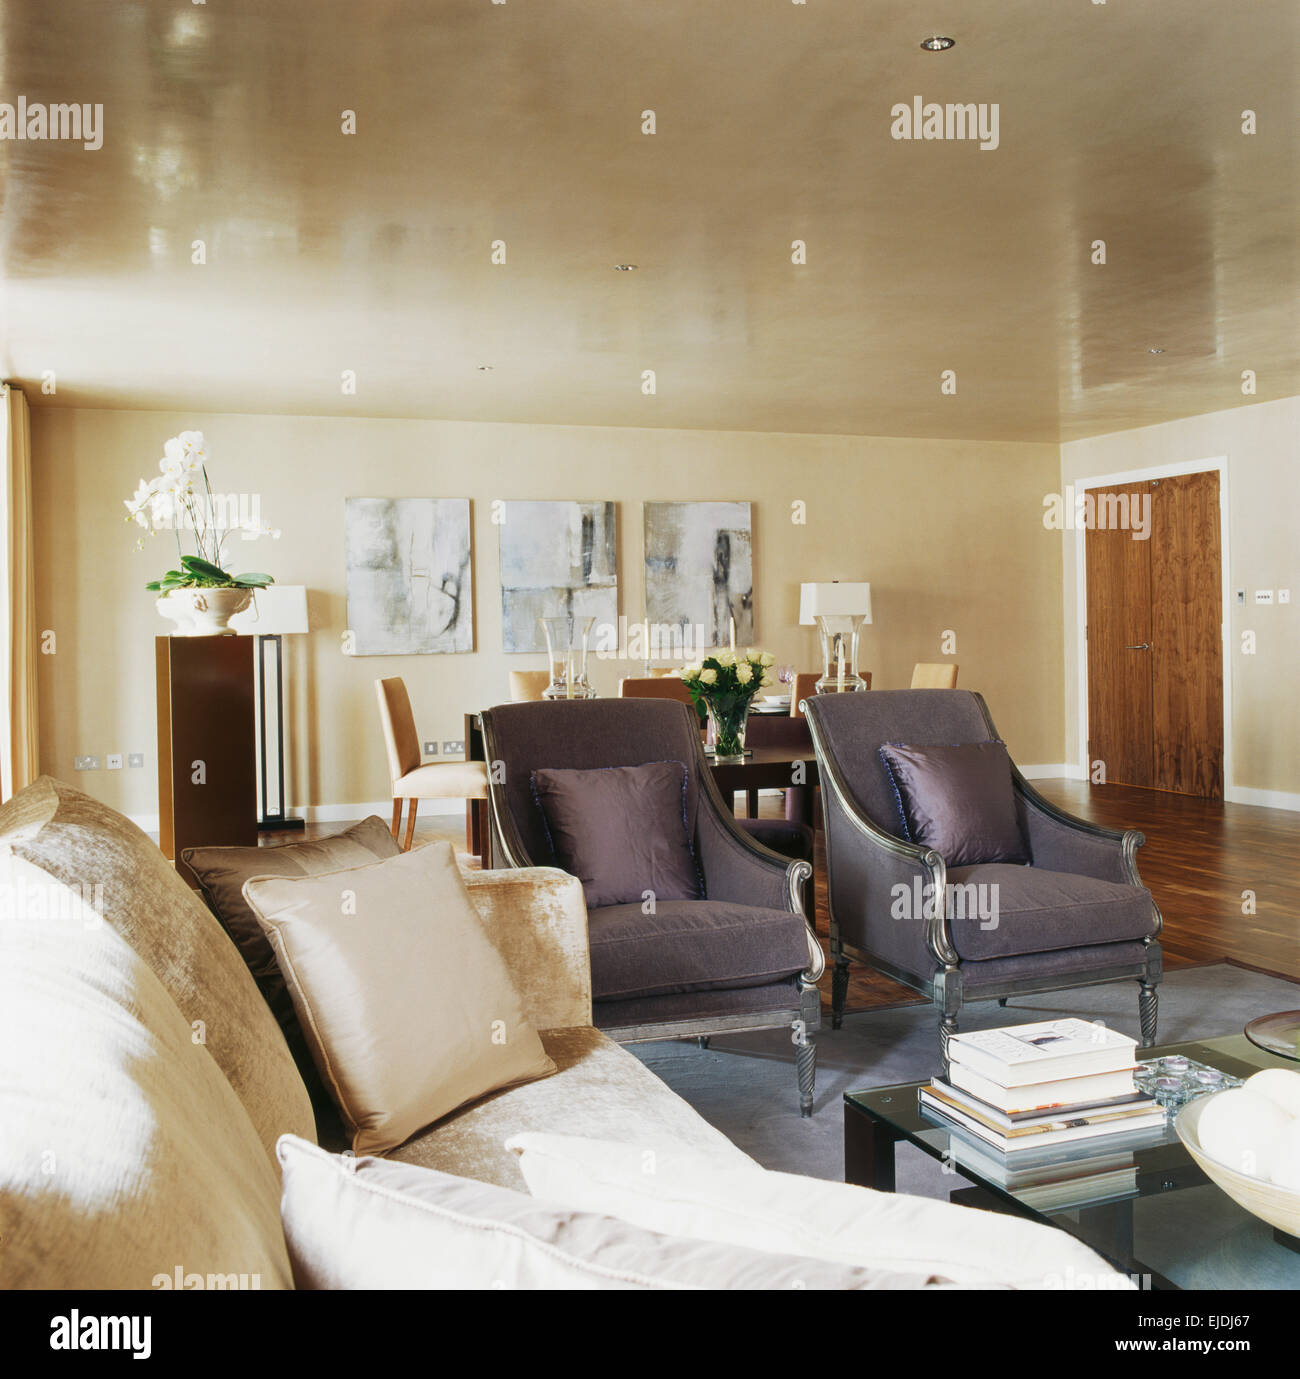 Grey Velvet Chairs And Cream Sofa In Modern Apartment Living Room With Lacquer Effect Ceiling